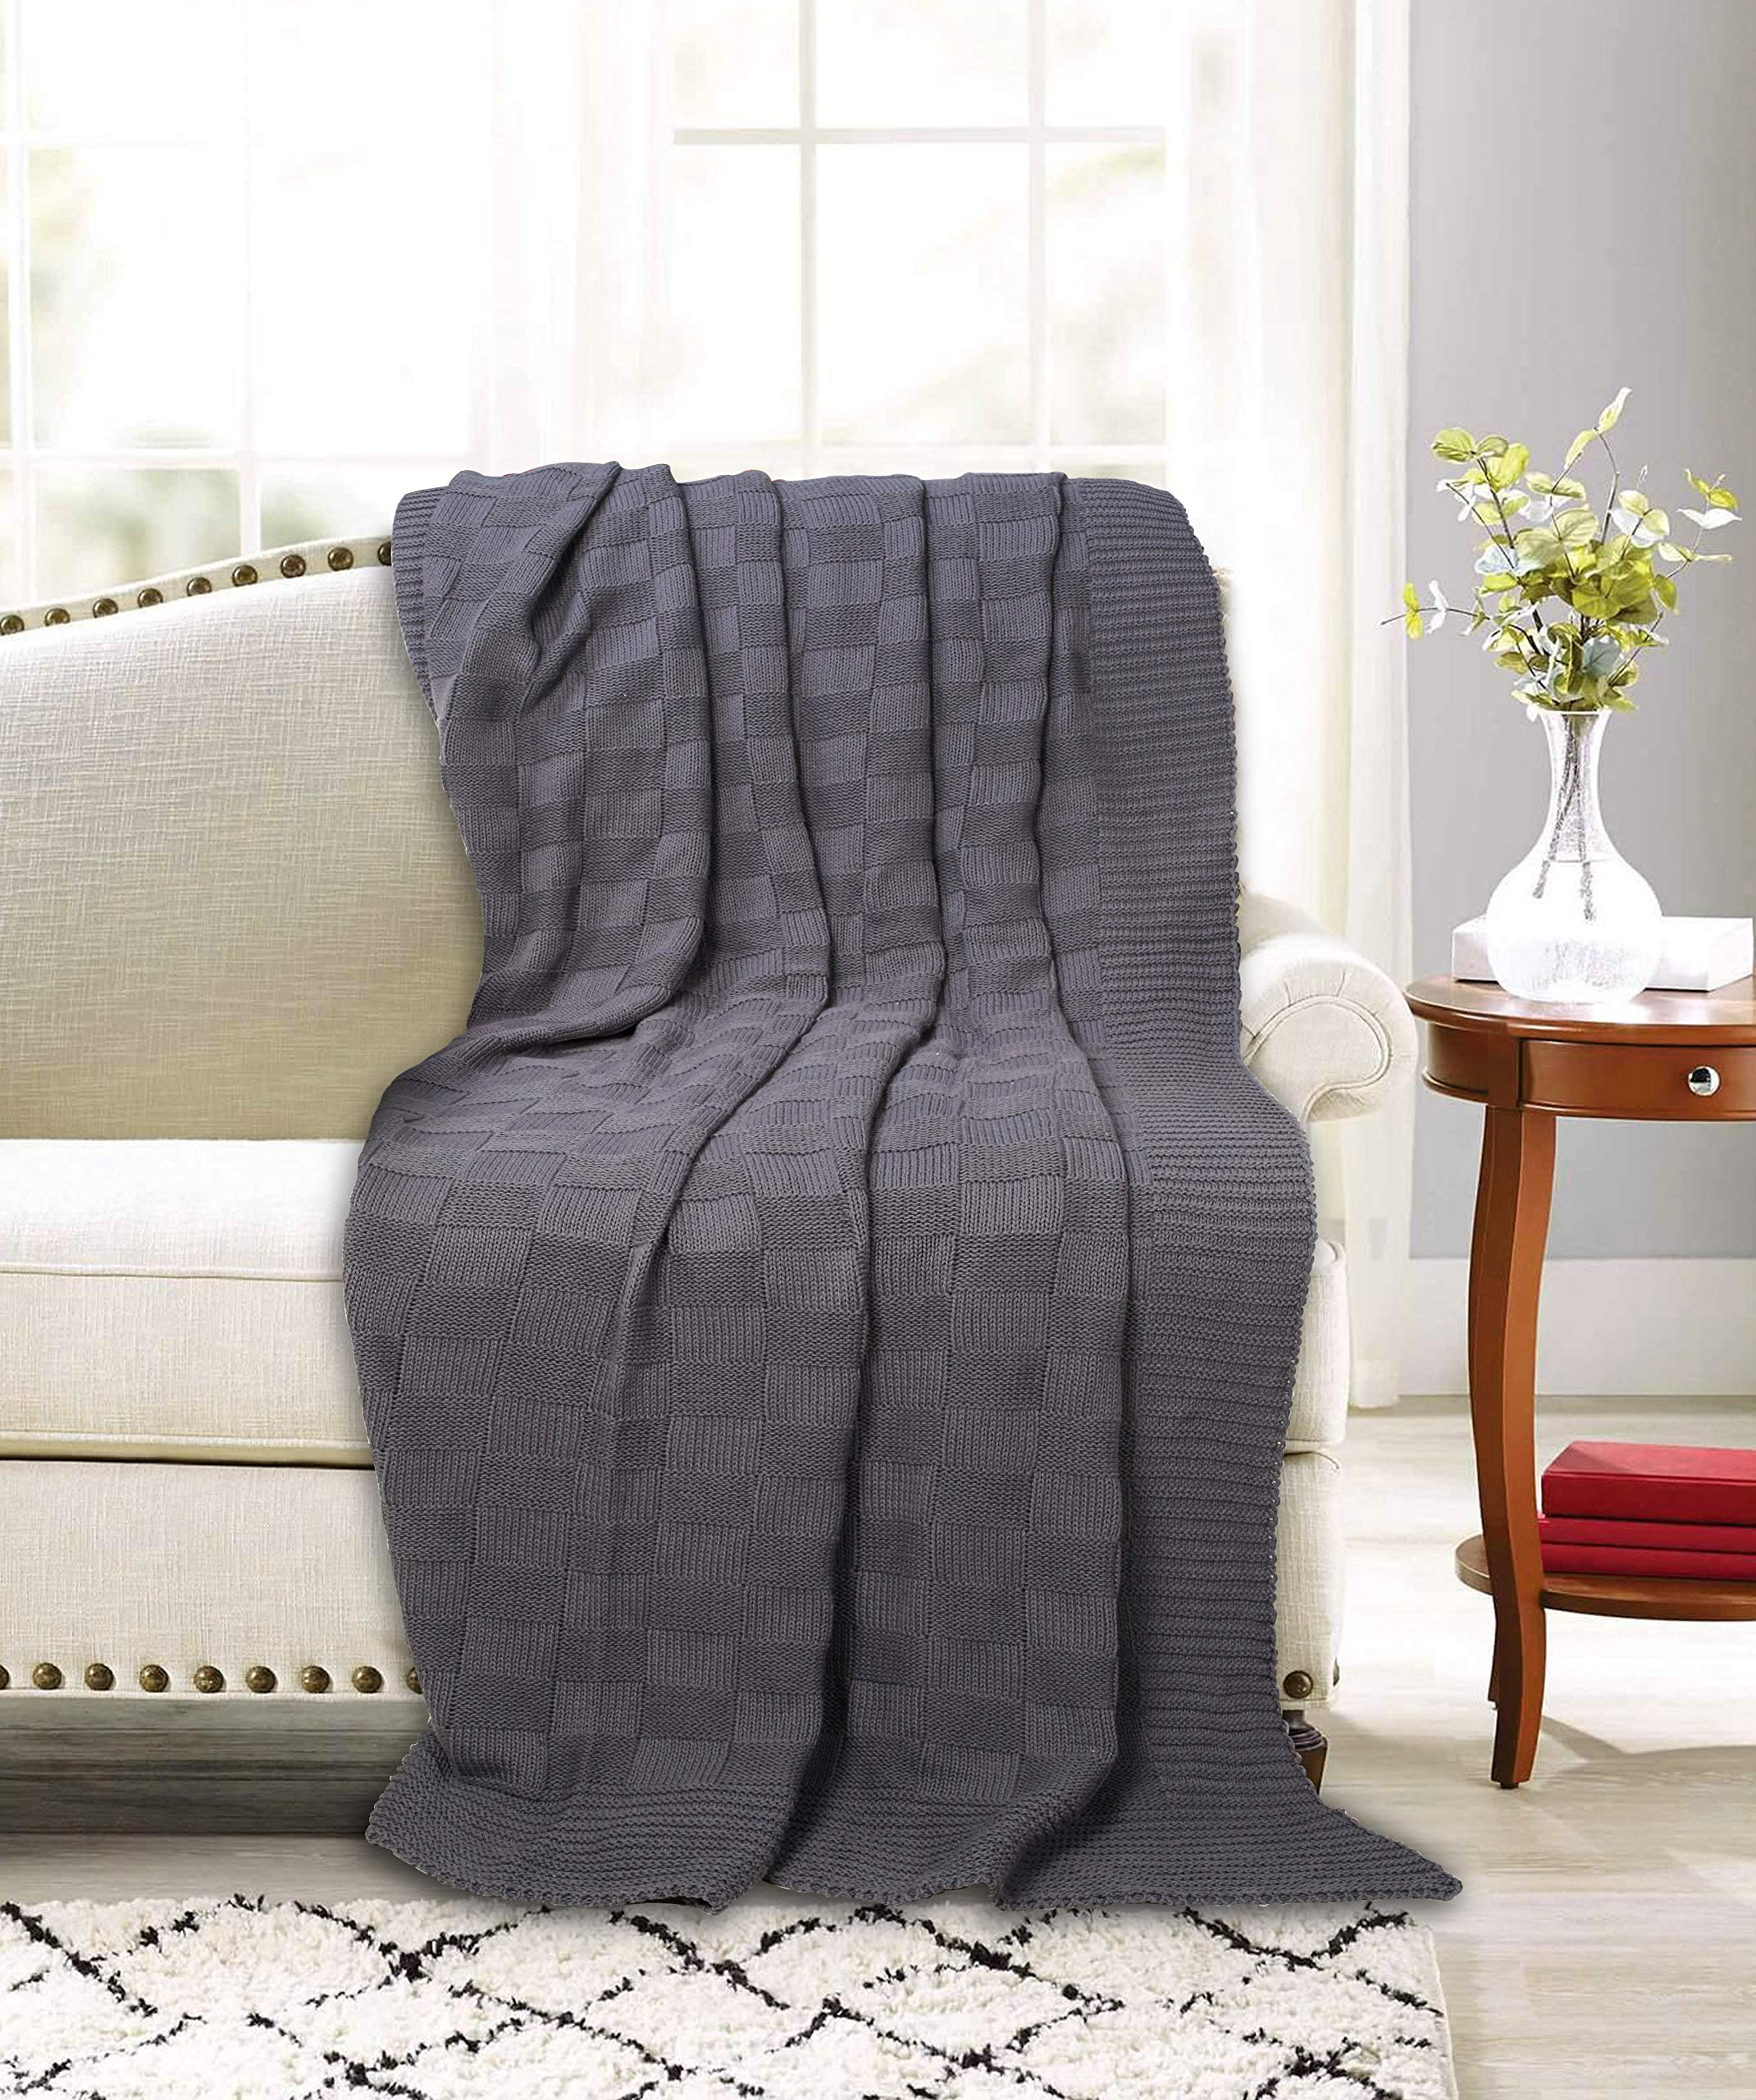 GLAMBURG Knitted Throw Blanket for Couch Sofa Bed Travel 50x60, Cotton Throw Blankets for Adults, All Season Knit Throw Blanket, Basket Weave Farmhouse Cotton Knitted Throw Blanket Charcoal Grey